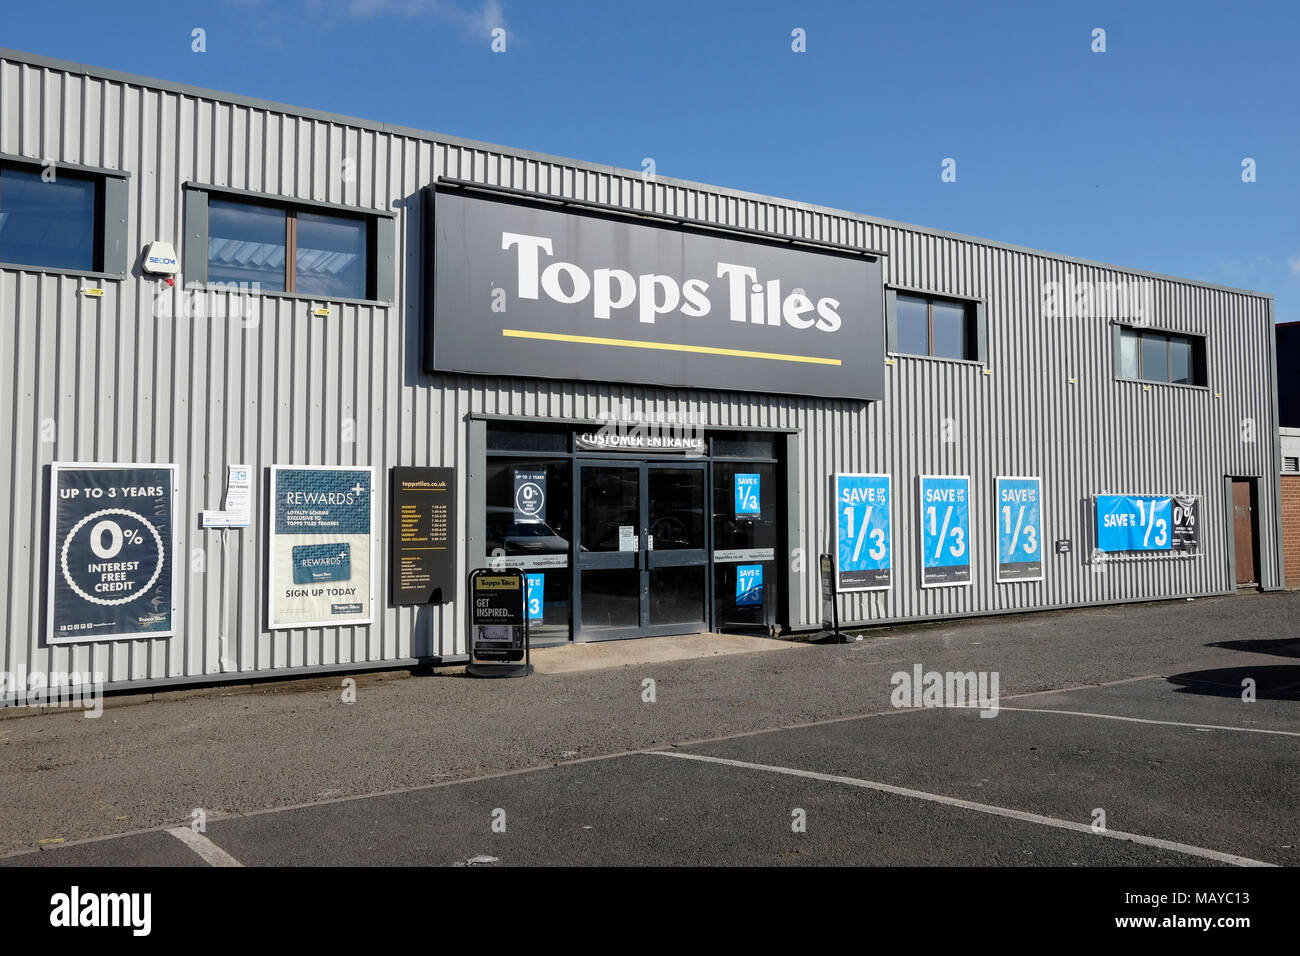 A general view of Topps tiles shop in Willesden, London - Stock Image